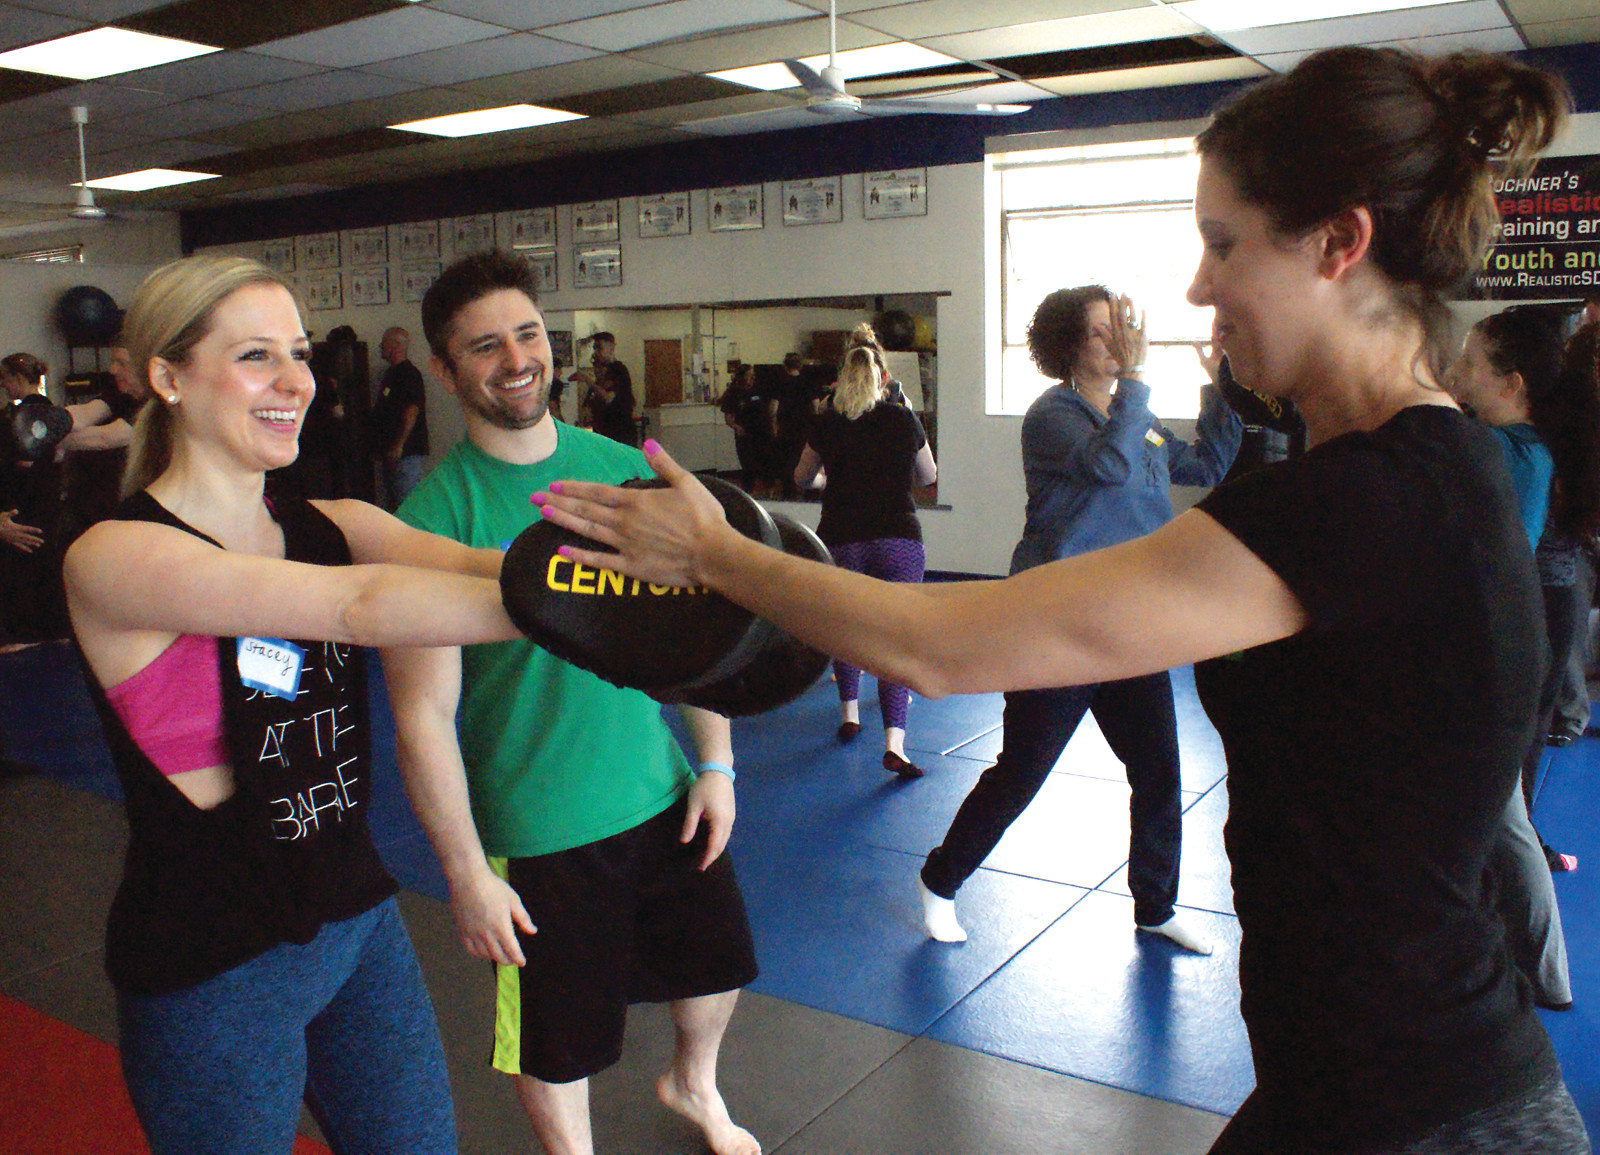 LEARNING TO STRIKE: Sensei Marc Bochner is pictured with (l-r) Stacey Ferranti and Caitlin Reynolds during the free Empower Mom program at Bochner's Realistic Self-Defense on May 21.